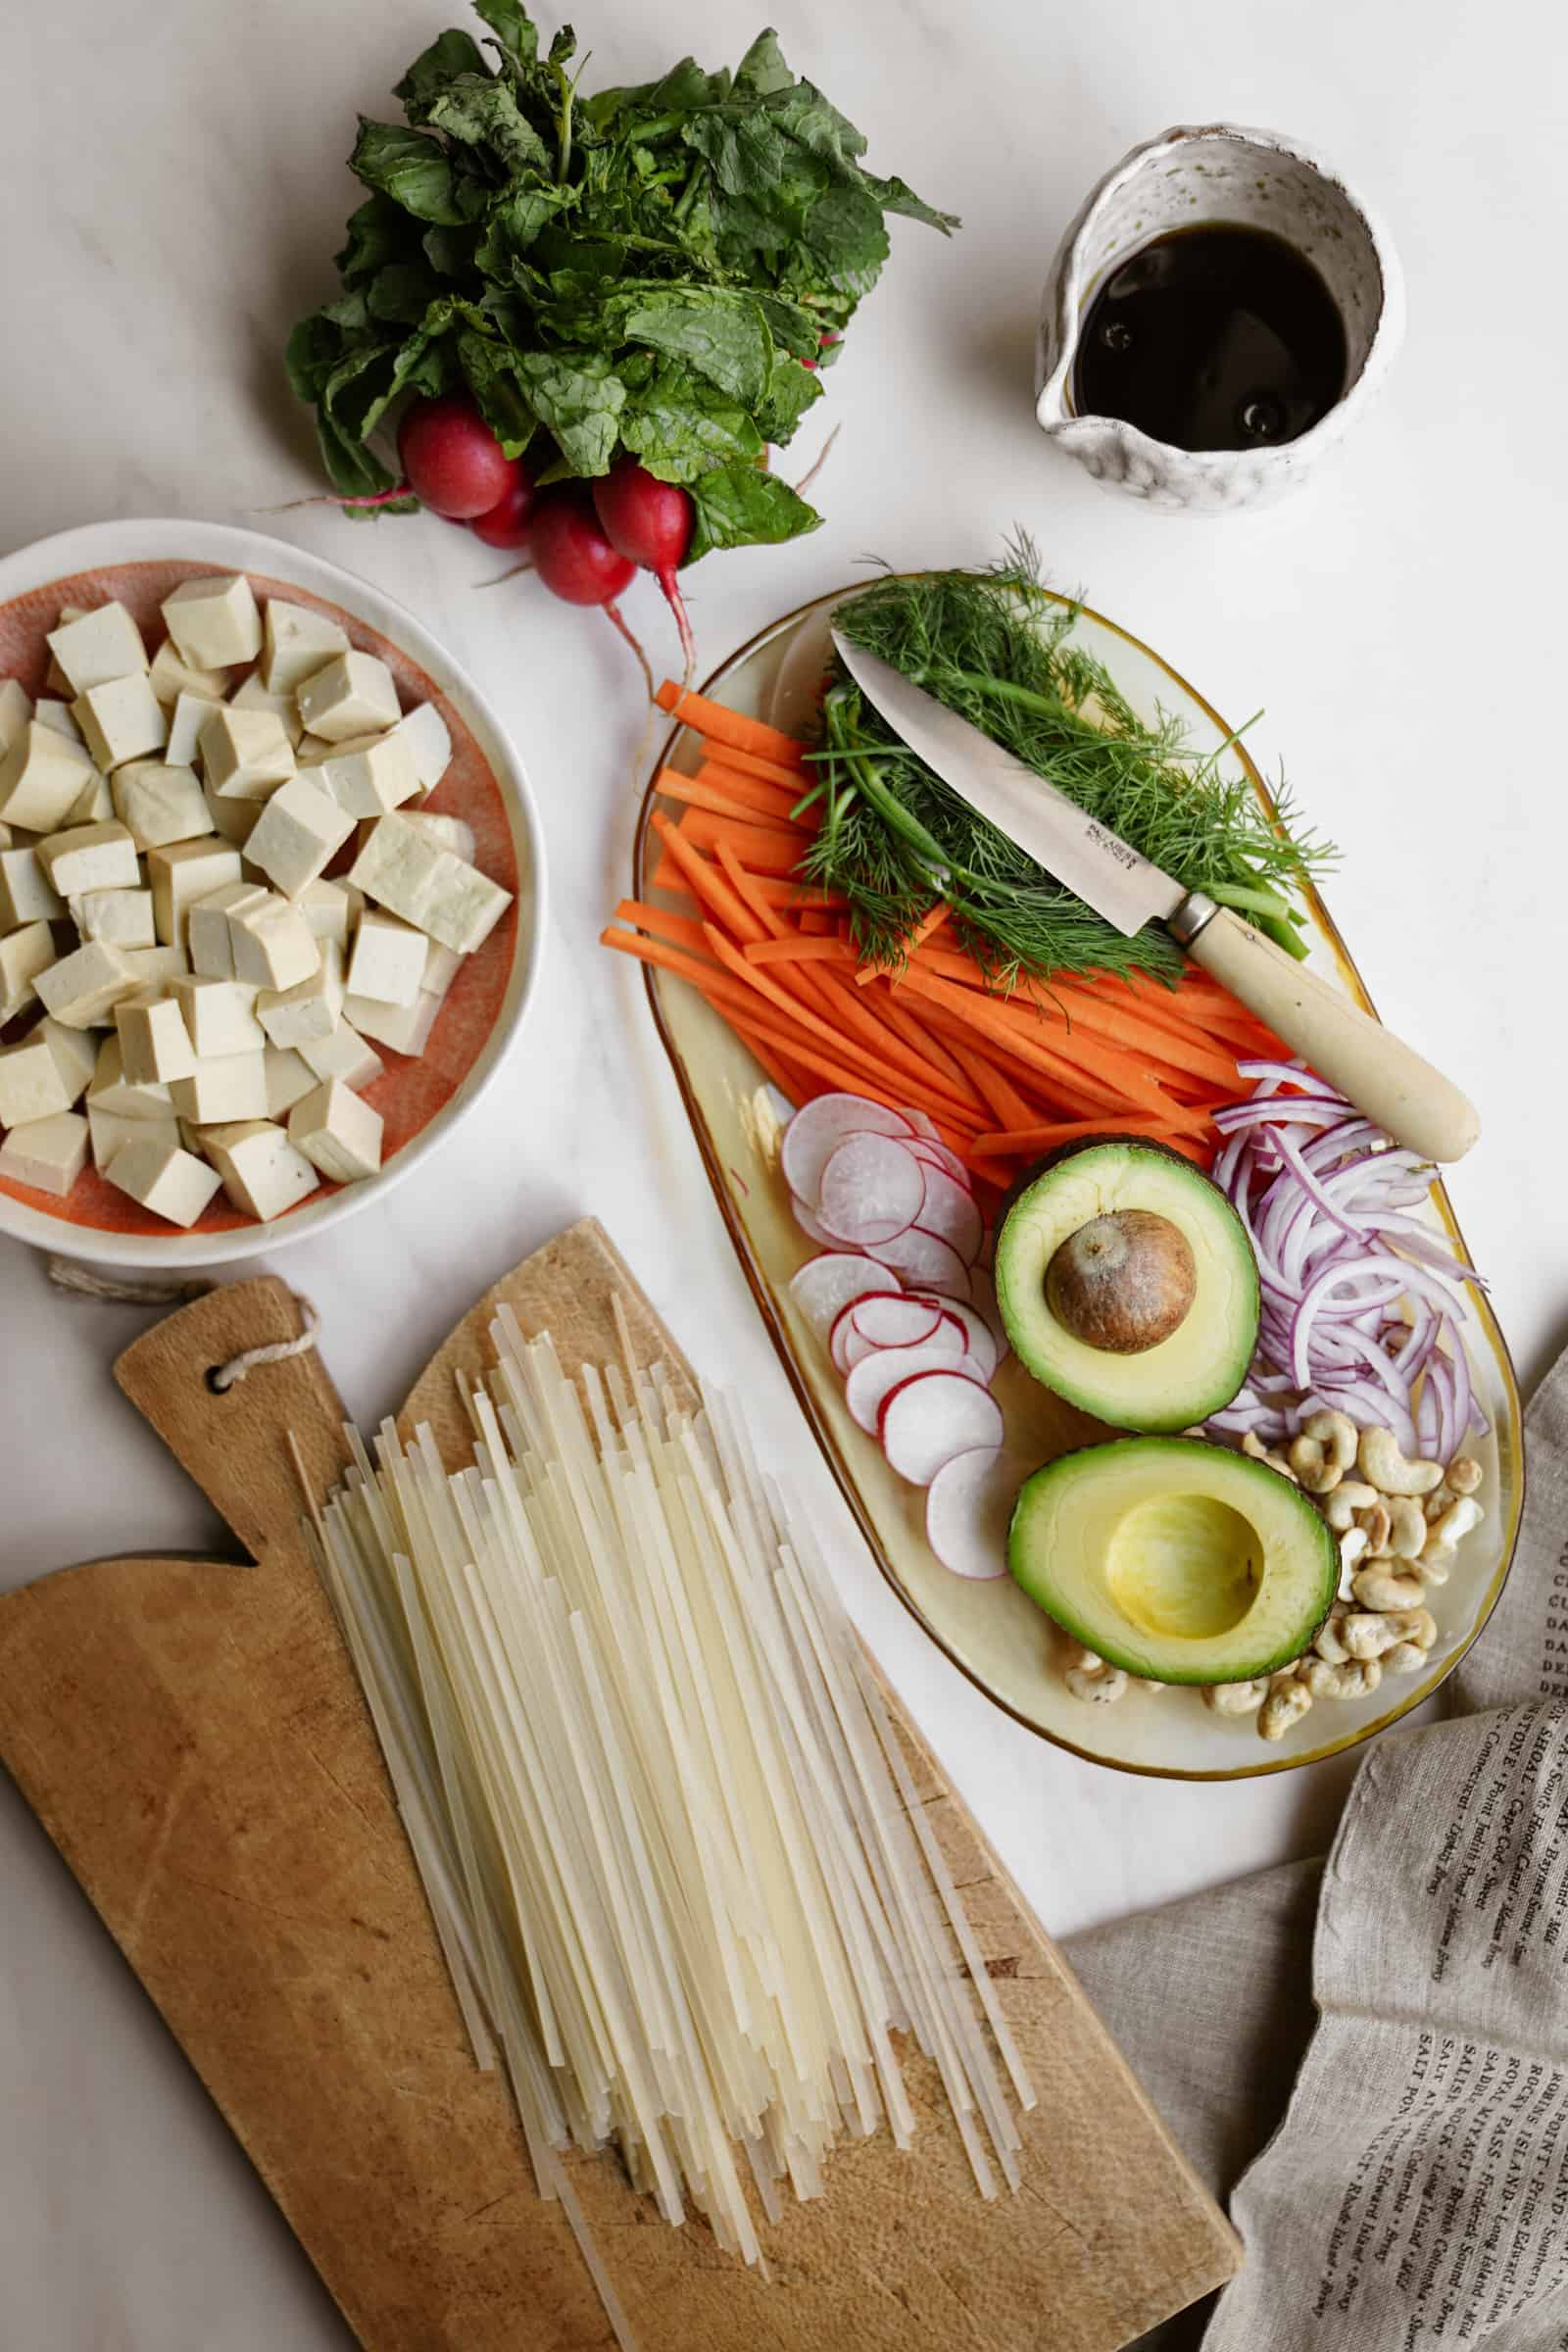 Ingredients for crispy tofu noodle bowl on countertop.